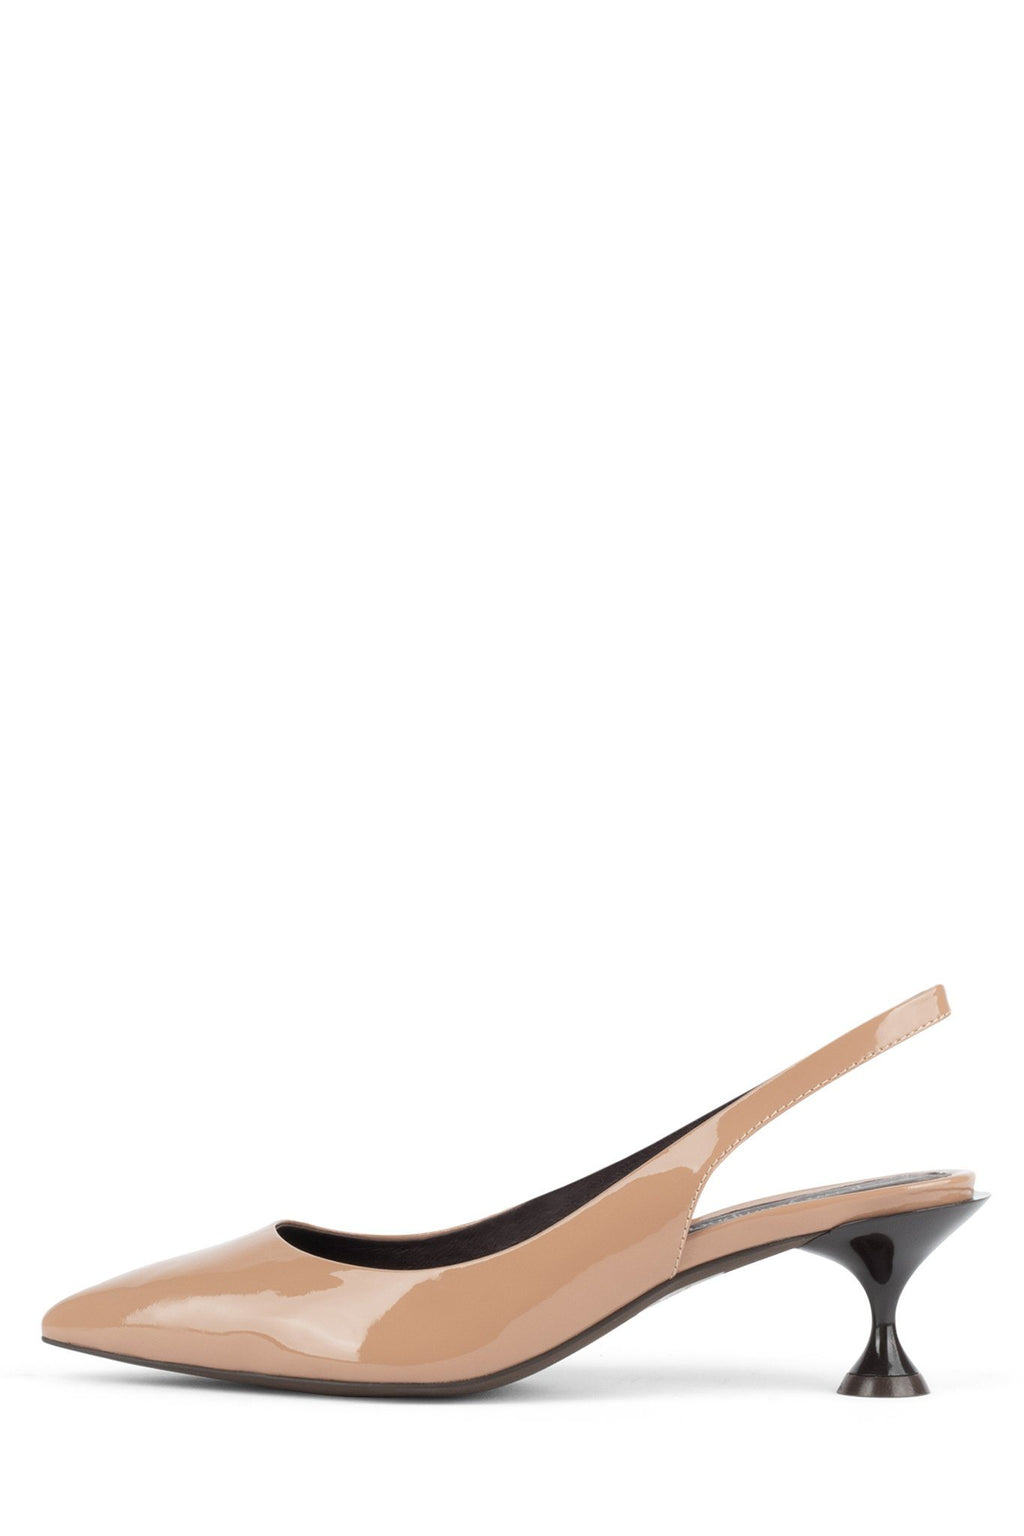 CONTESSA Pump ST Nude Patent Tan 6